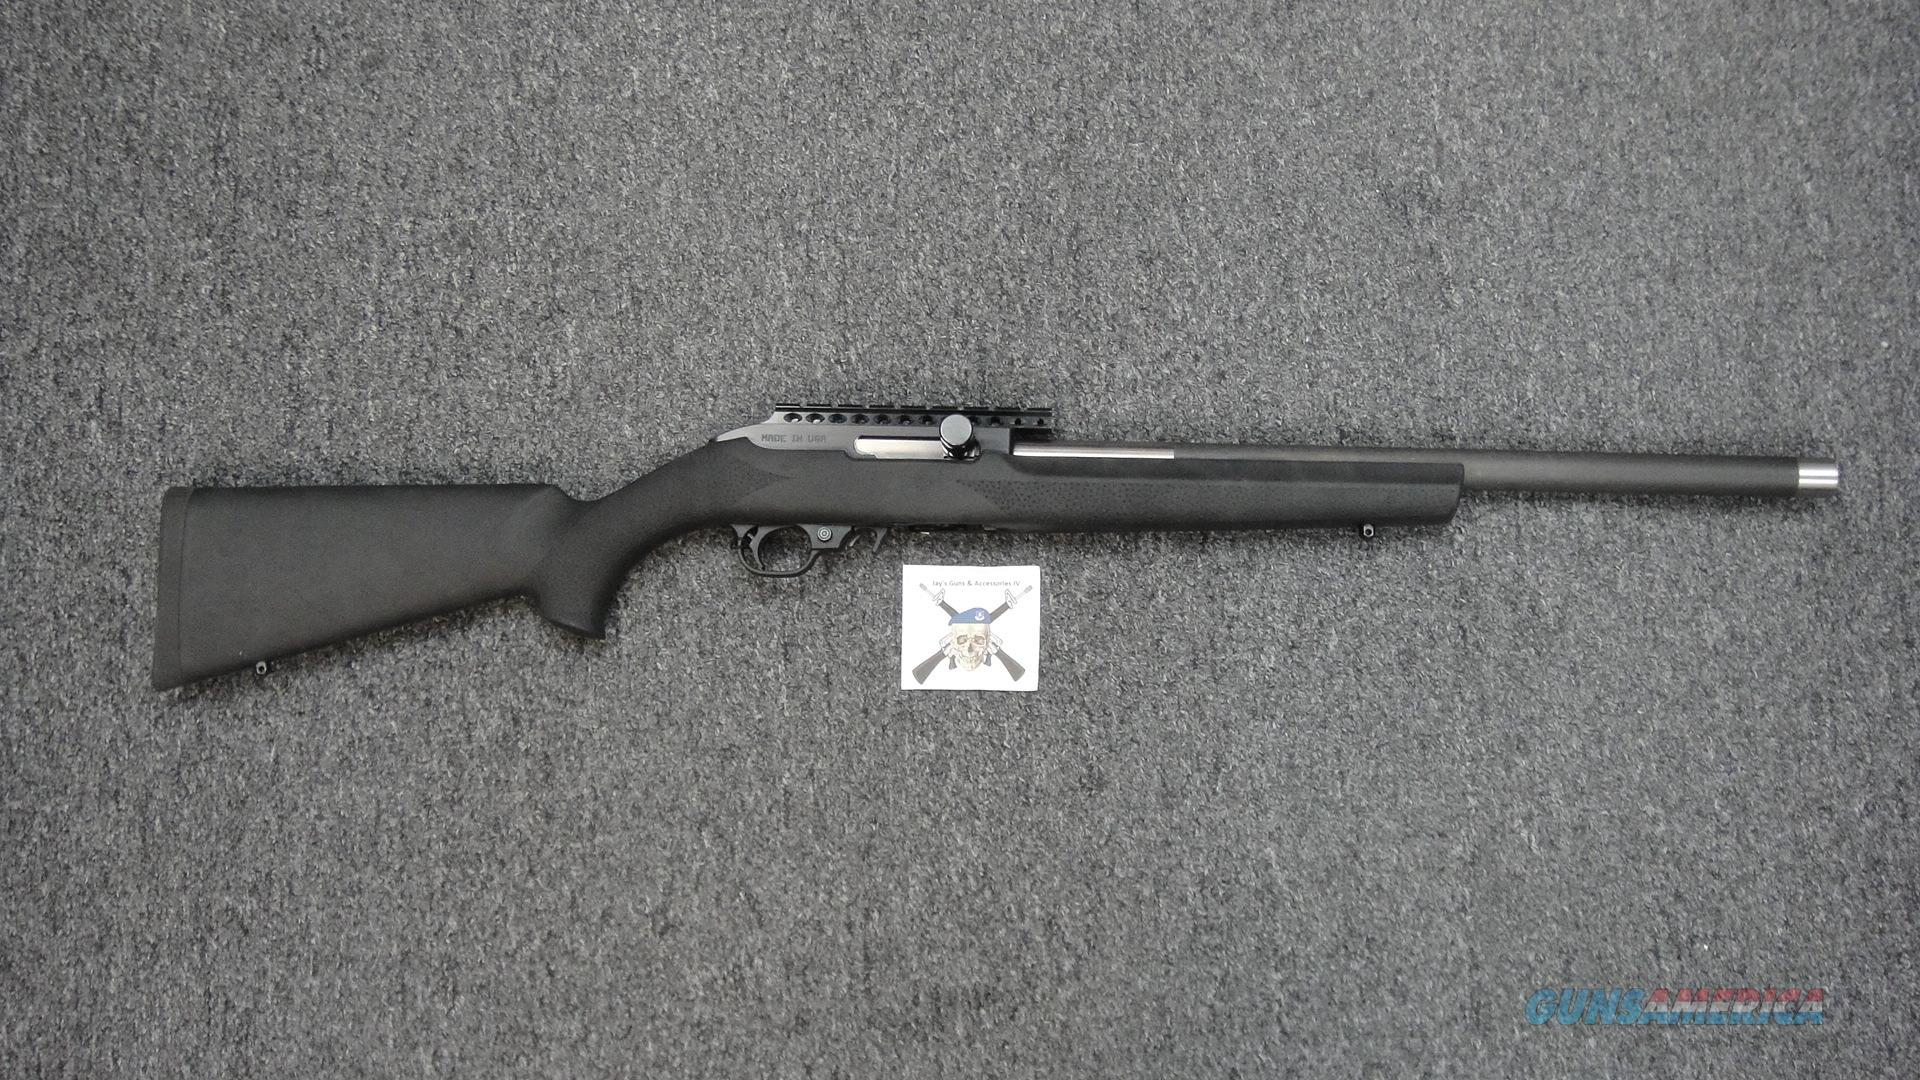 Magnum Research MLR-1722M .22WMR (Used) W/Hogue over-molded stock  Guns > Rifles > MN Misc Rifles